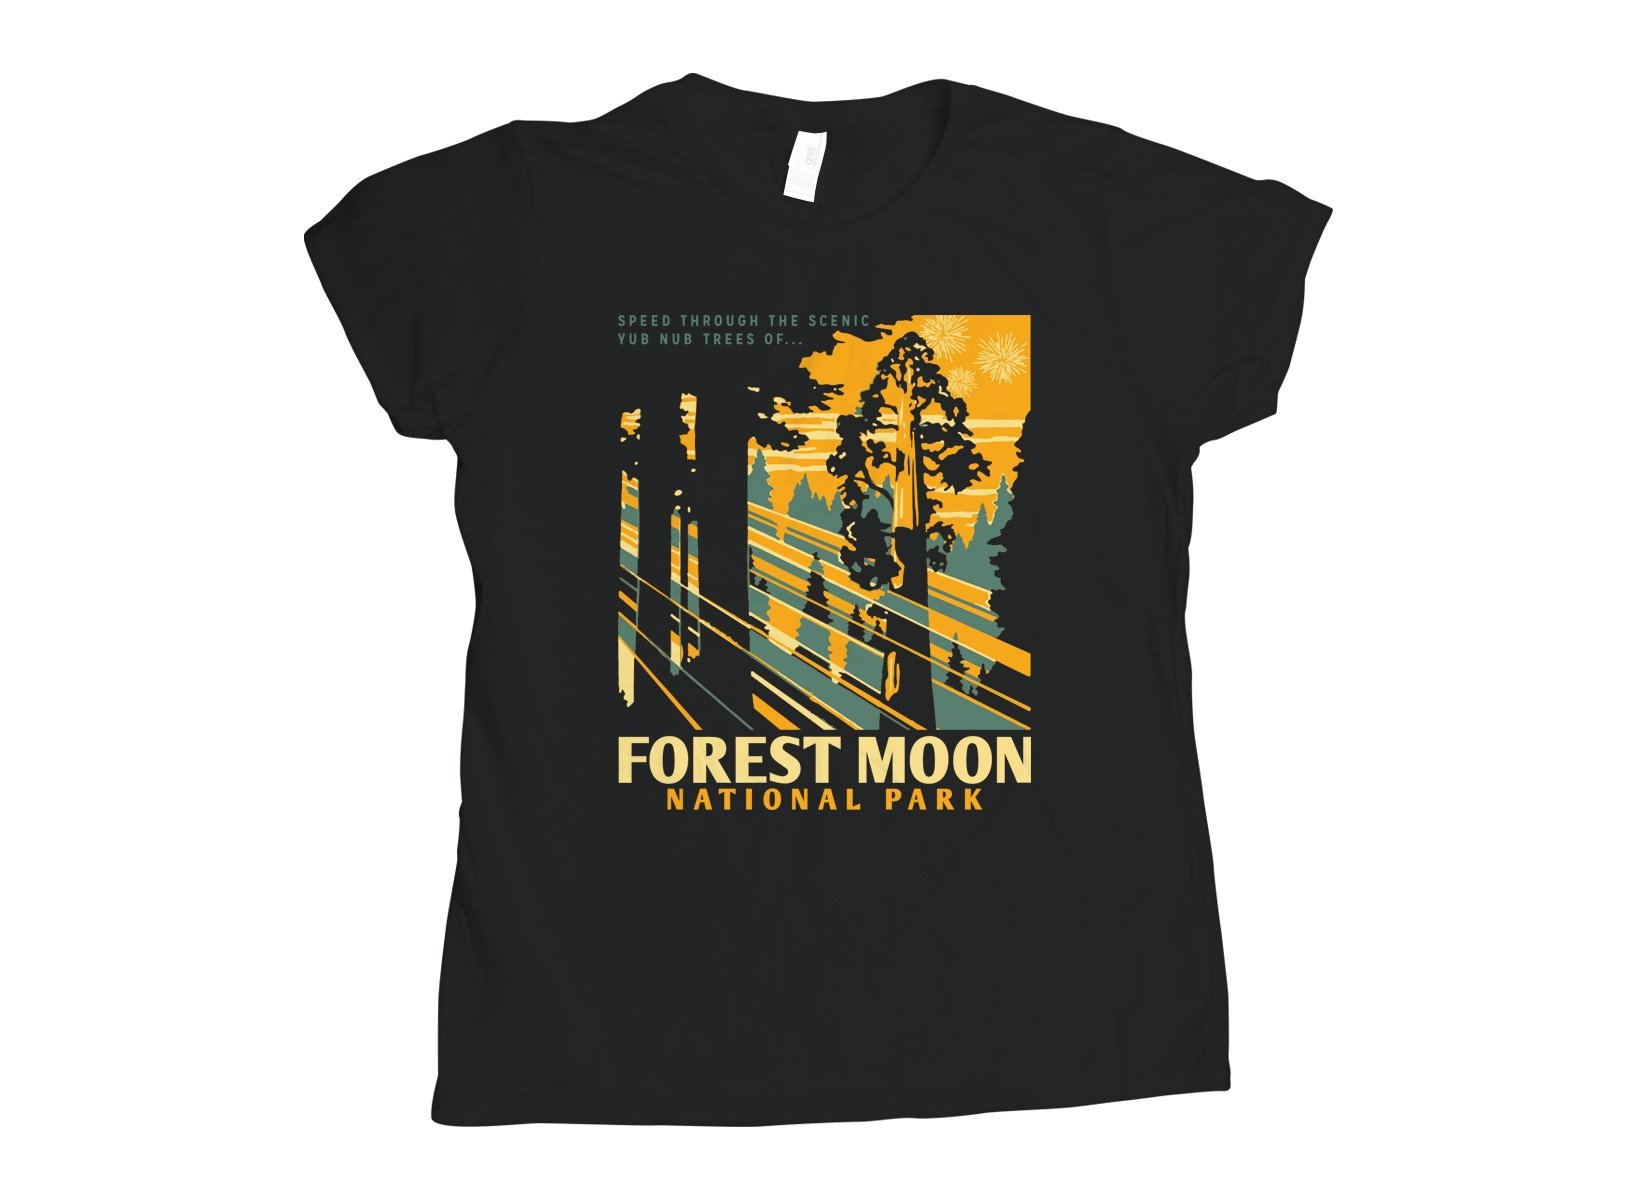 Forest Moon National Park on Womens T-Shirt